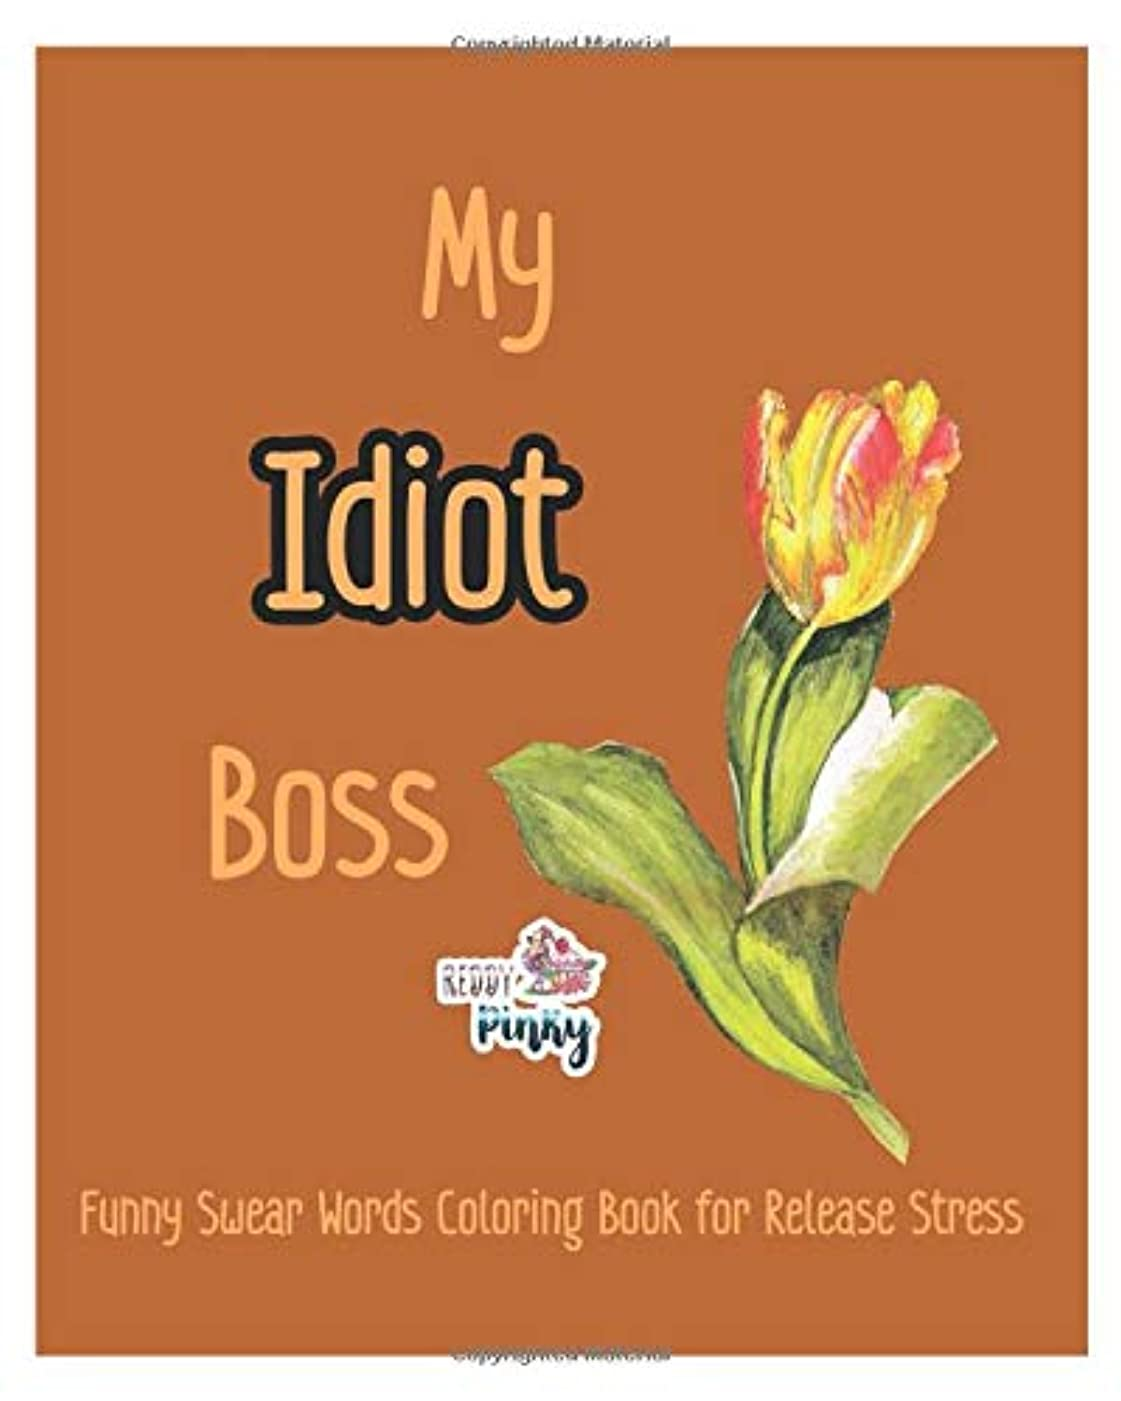 間若い兄弟愛My Idiot Boss: Funny Swear Words Coloring Book for Release Stress (Adult Sweary 999)